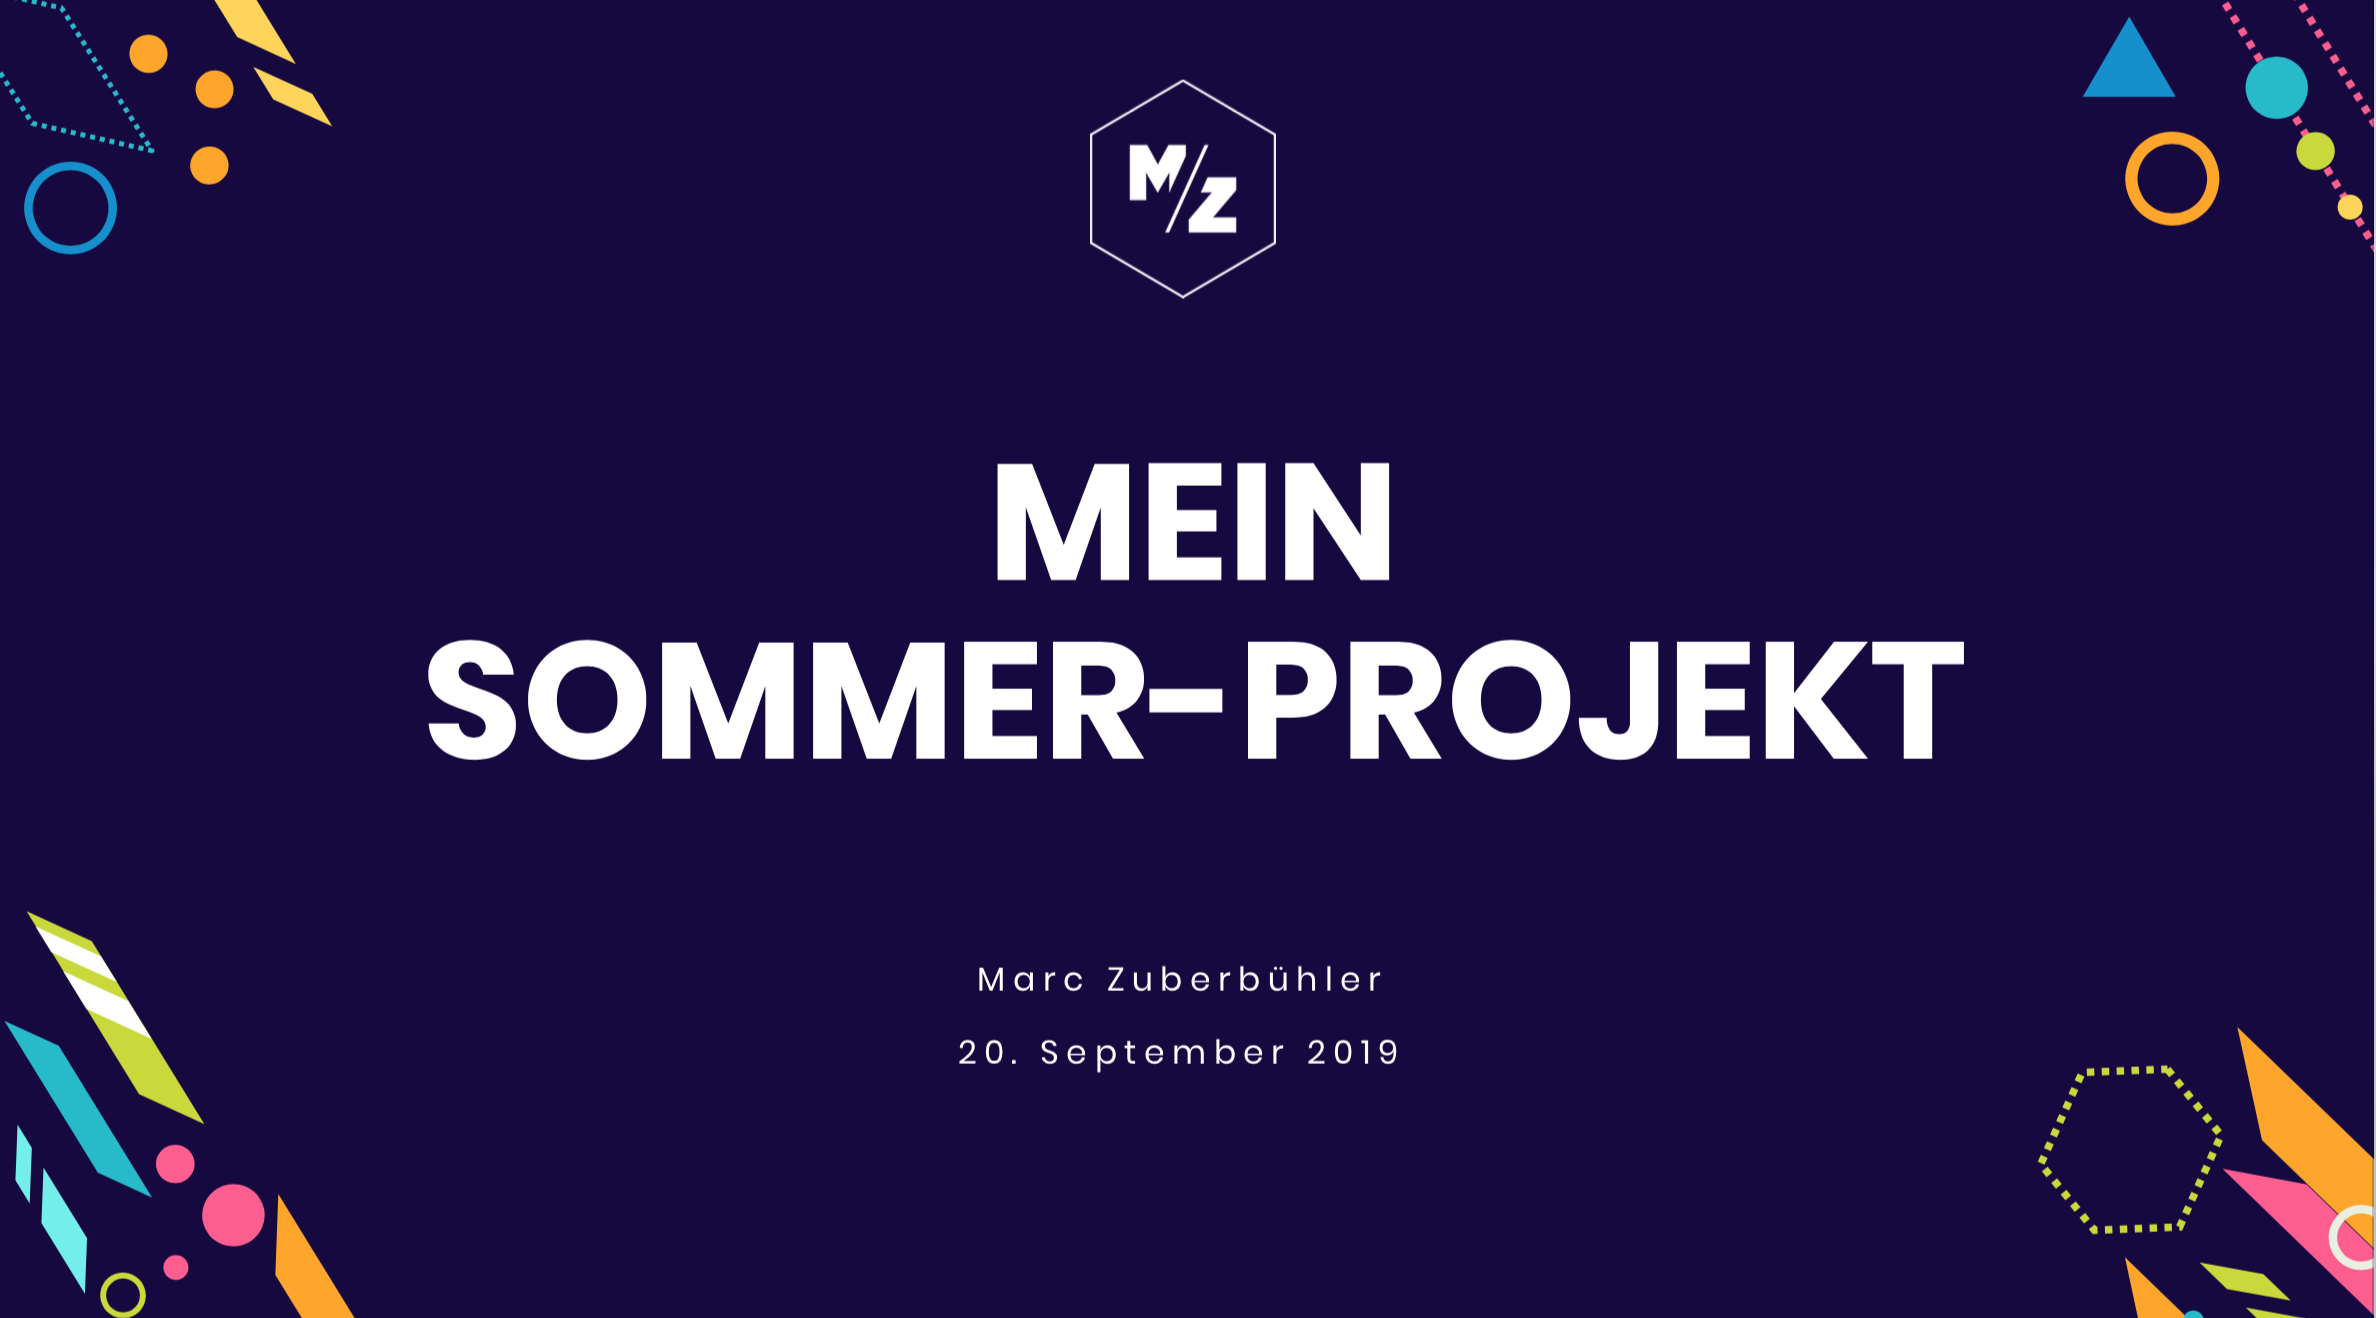 CAS Summer Project: Präsentation an der ZHdK